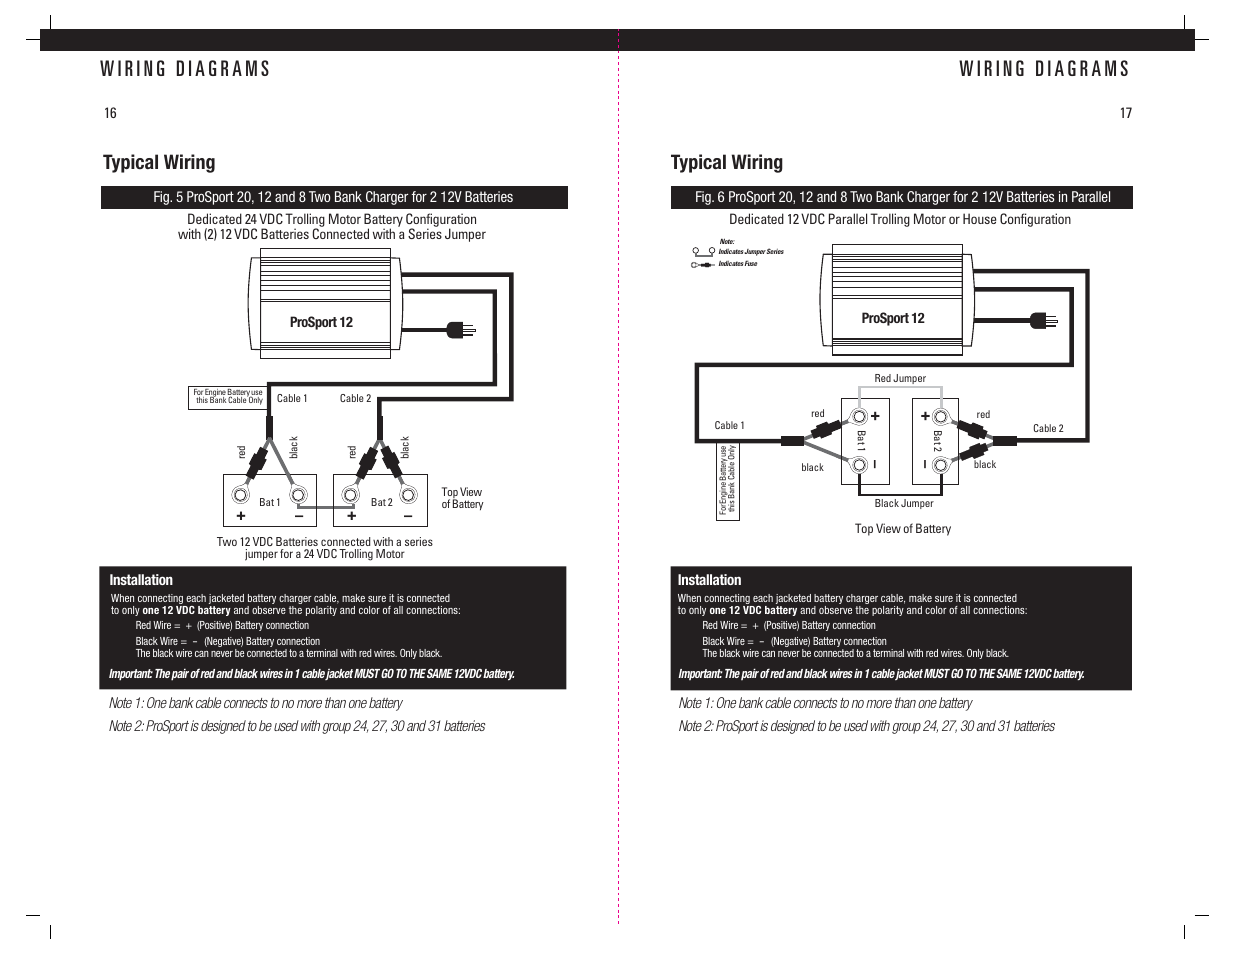 Typical Wiring